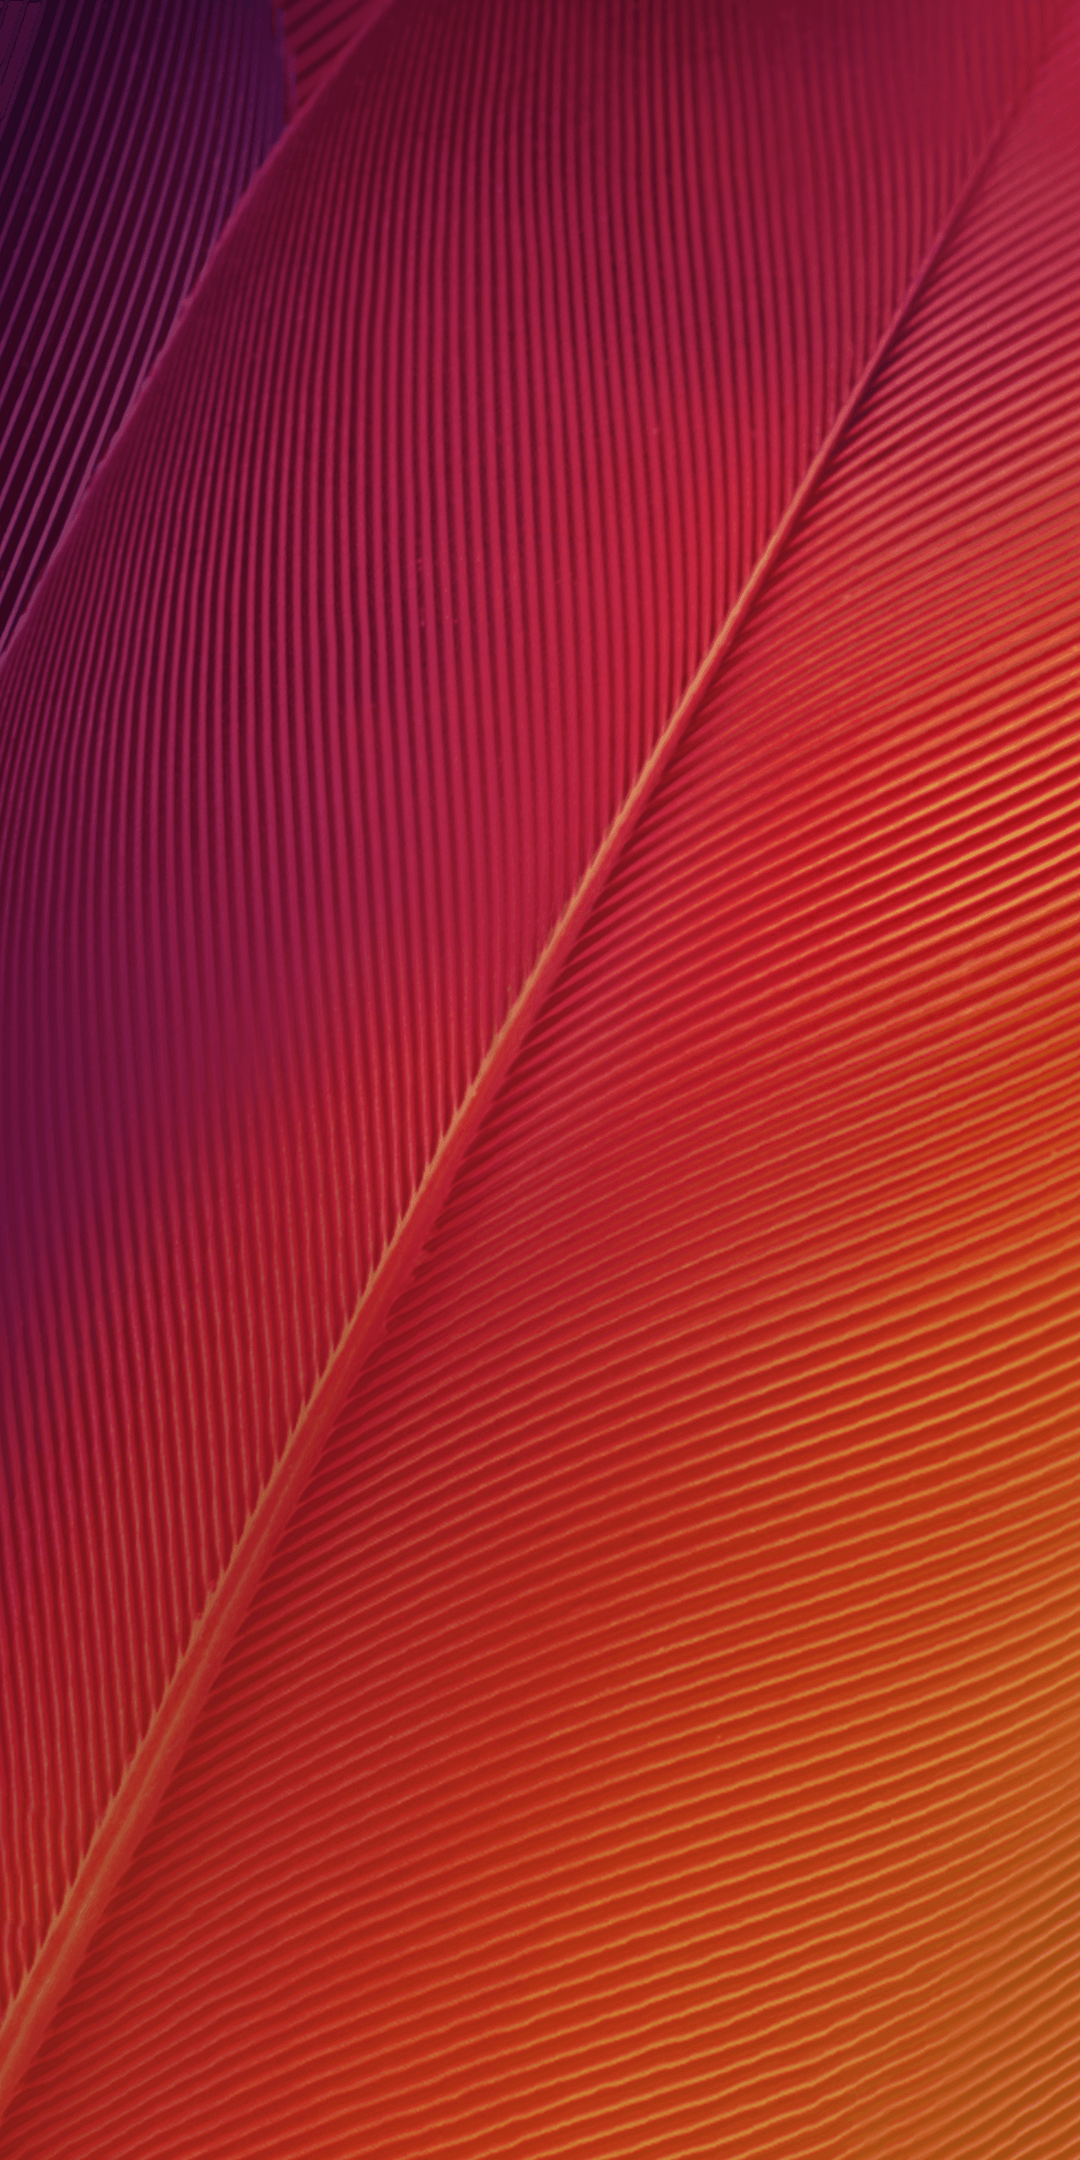 Lenovo S5 Stock Wallpapers | Download 28